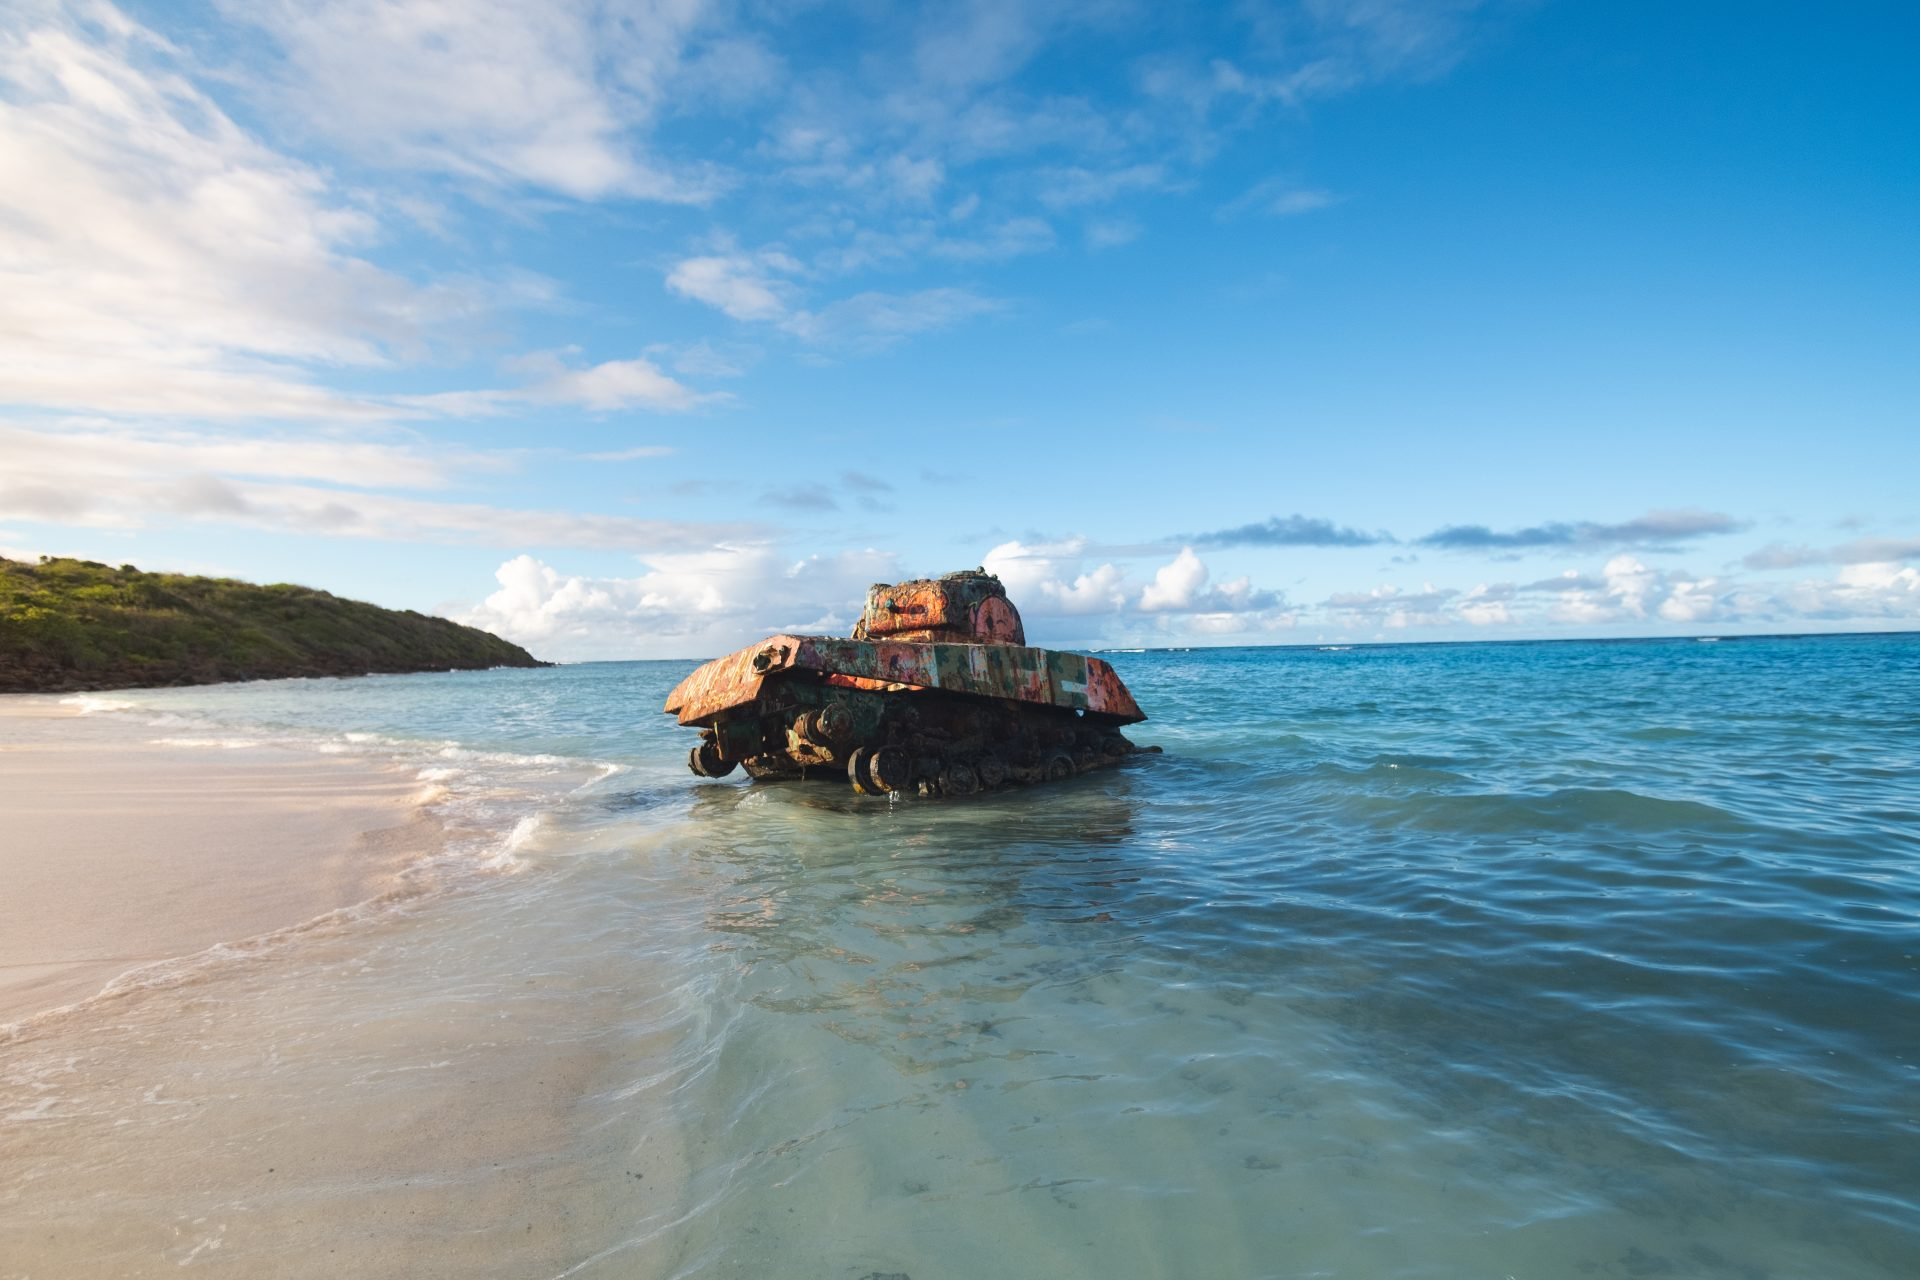 View of an abandoned US military tank flamenco beach in Culebra island Puerto Rico photo by Jo Kassis